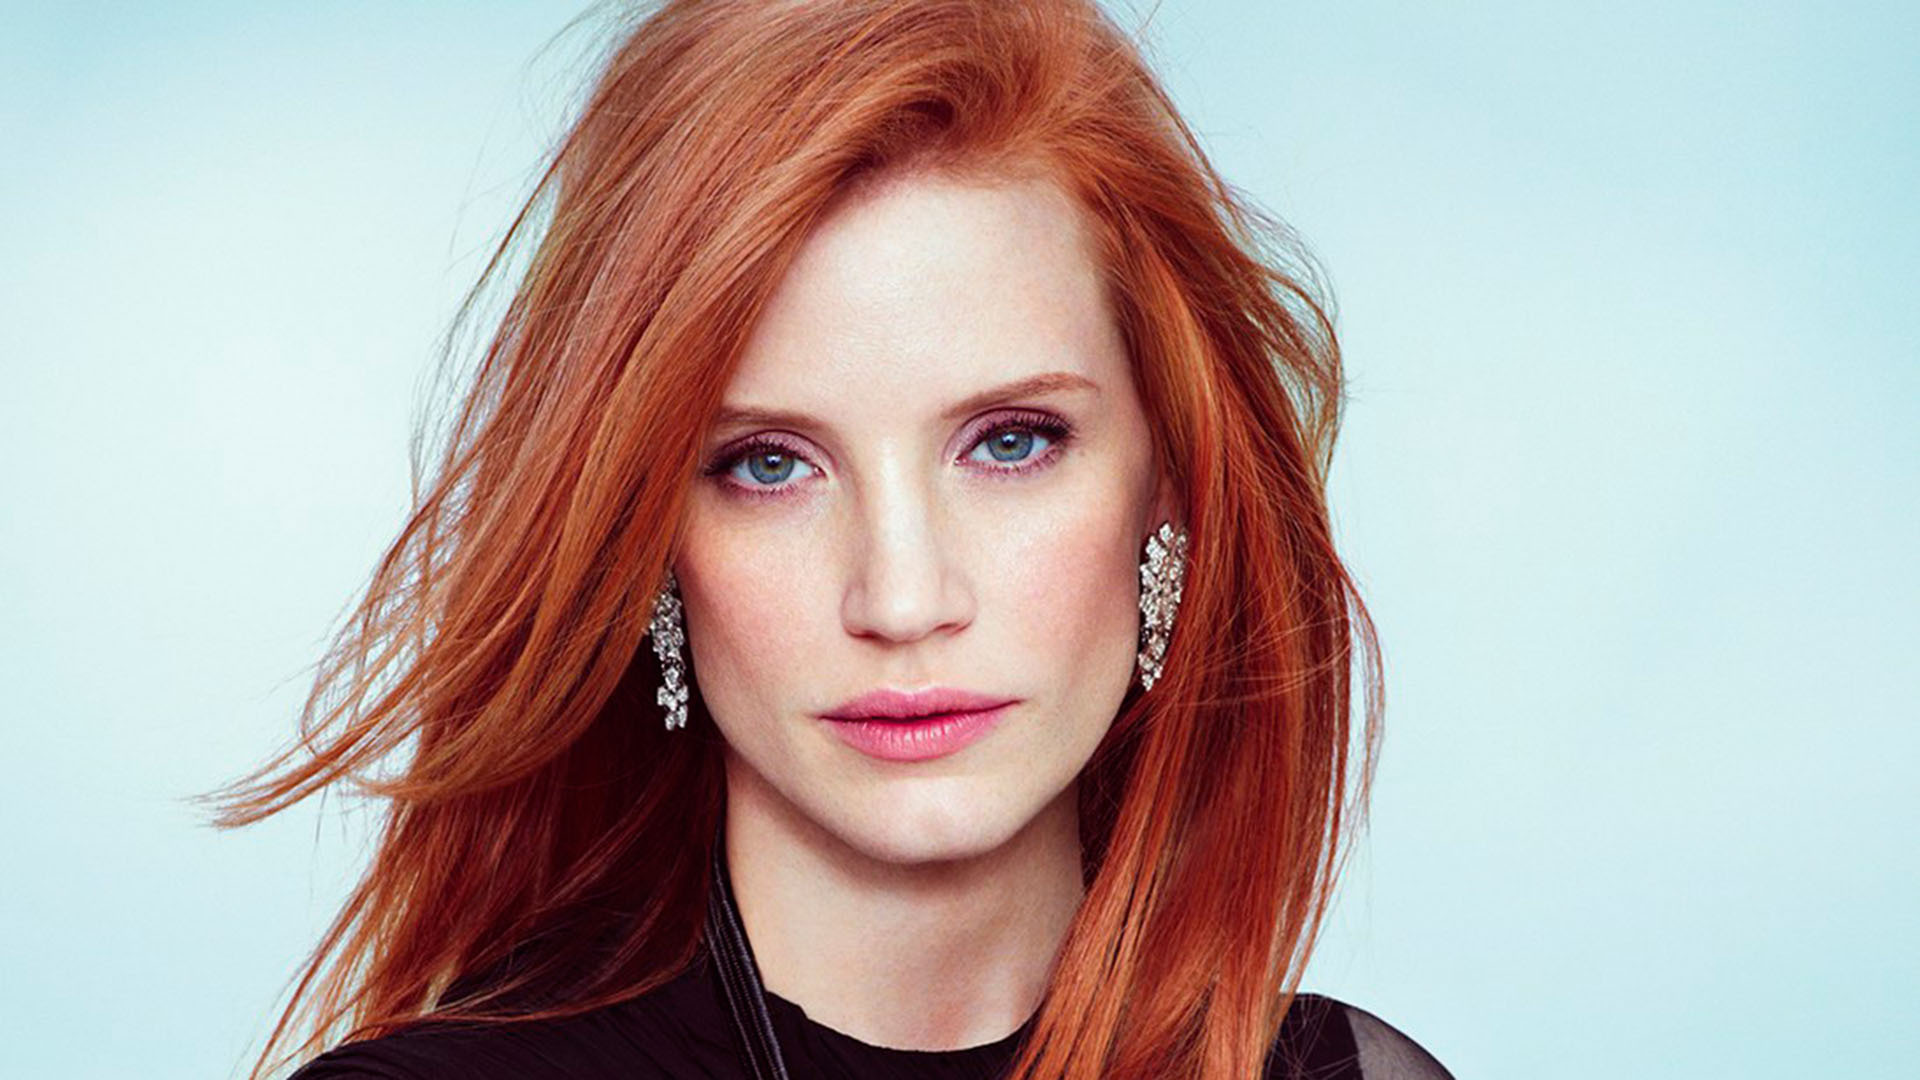 1920x1080 - Jessica Chastain Wallpapers 20